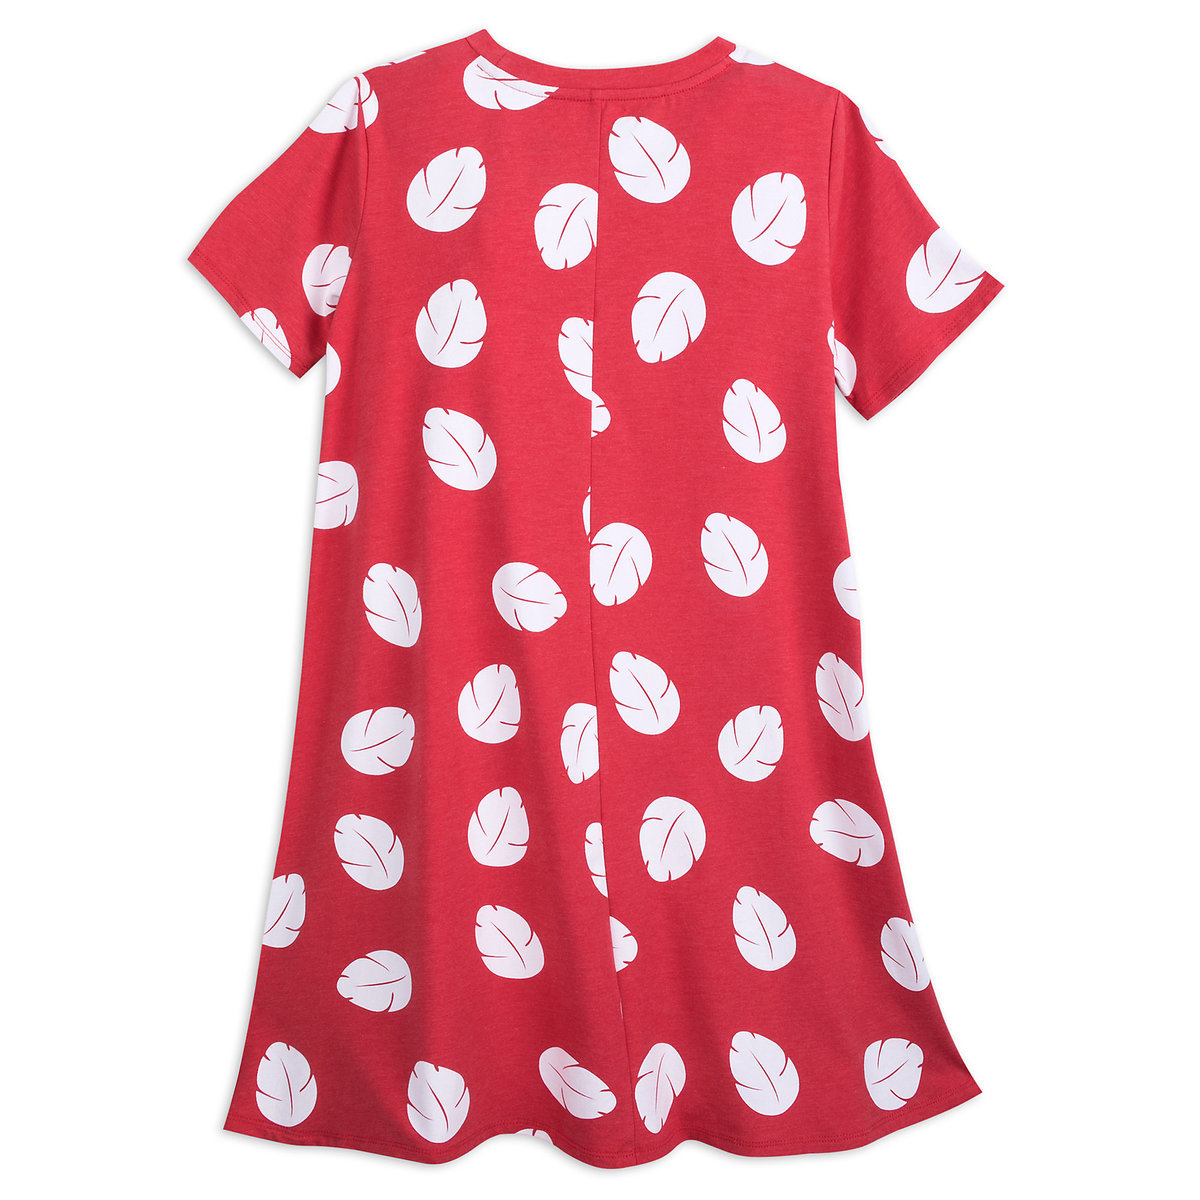 079c2ce6e83f Product Image of Lilo Shirt Dress for Women - Oh My Disney # 3